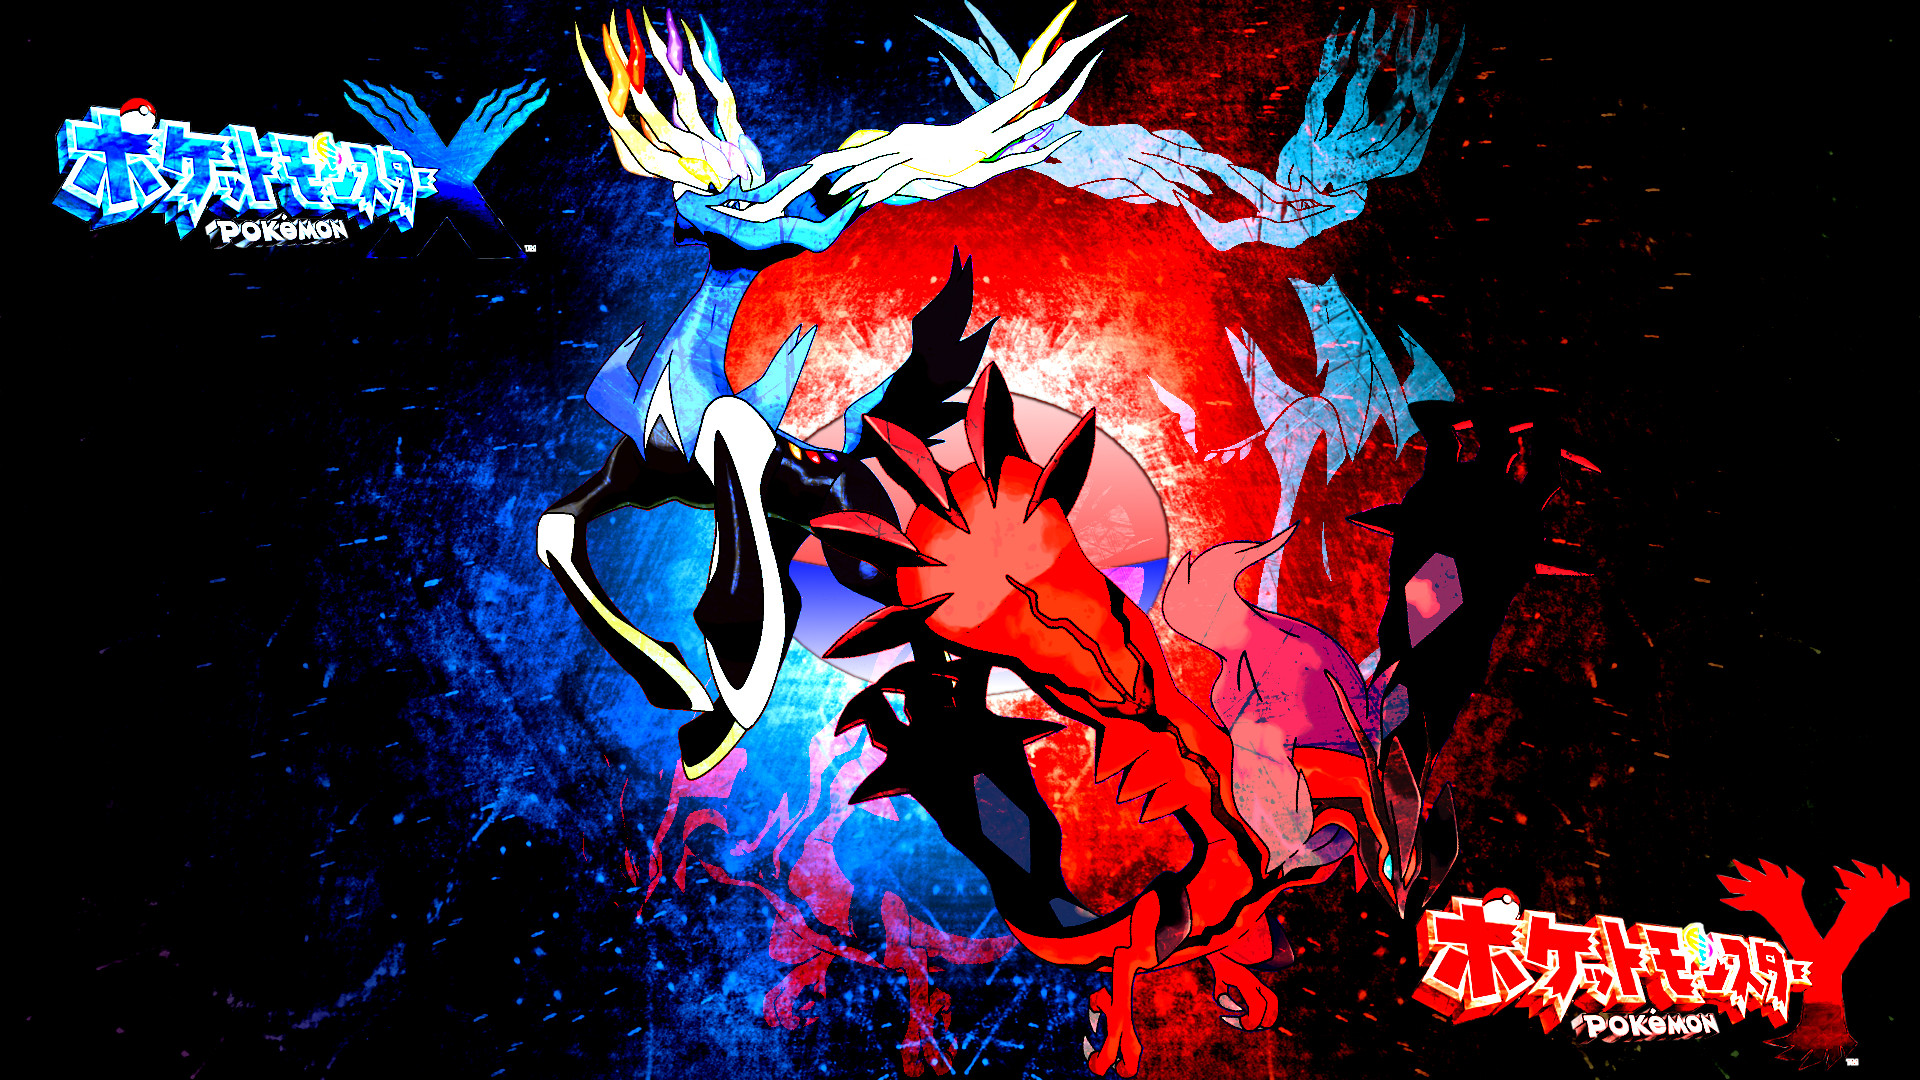 1920x1080 ... Pokemon X and Y: Xerneas and Yveltal by FRUITYNITE